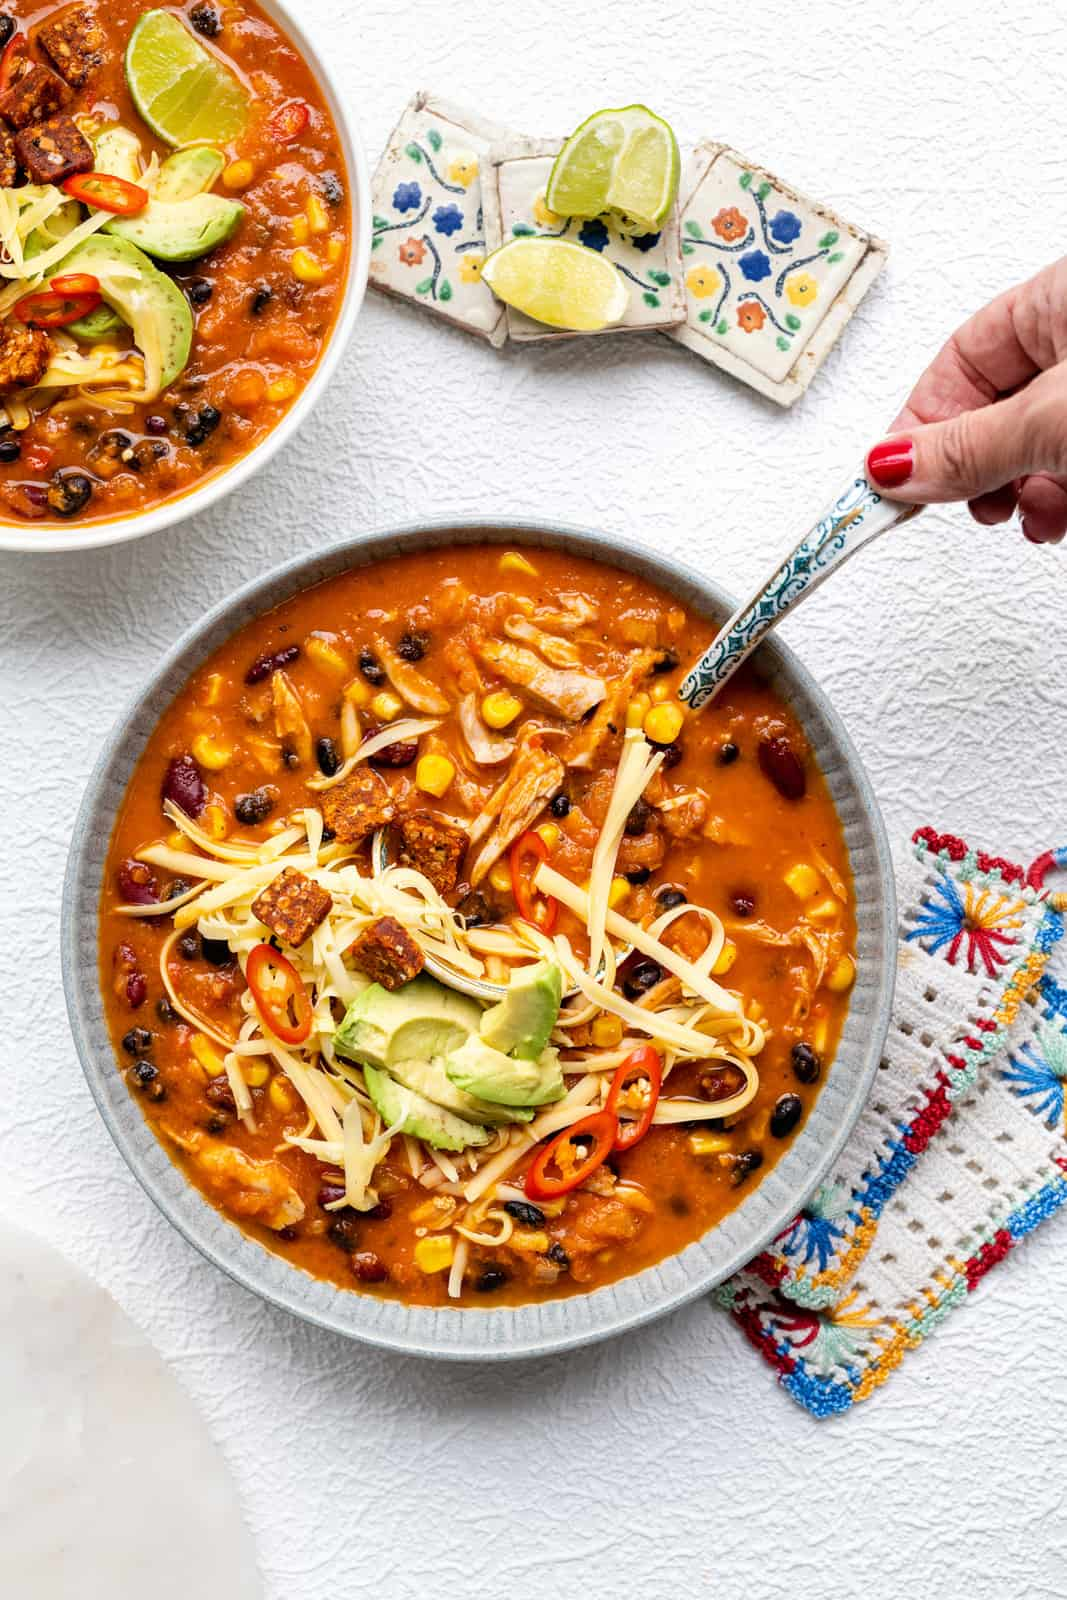 Bowl of creamy enchilada soup with corn, beans, chicken and toppings